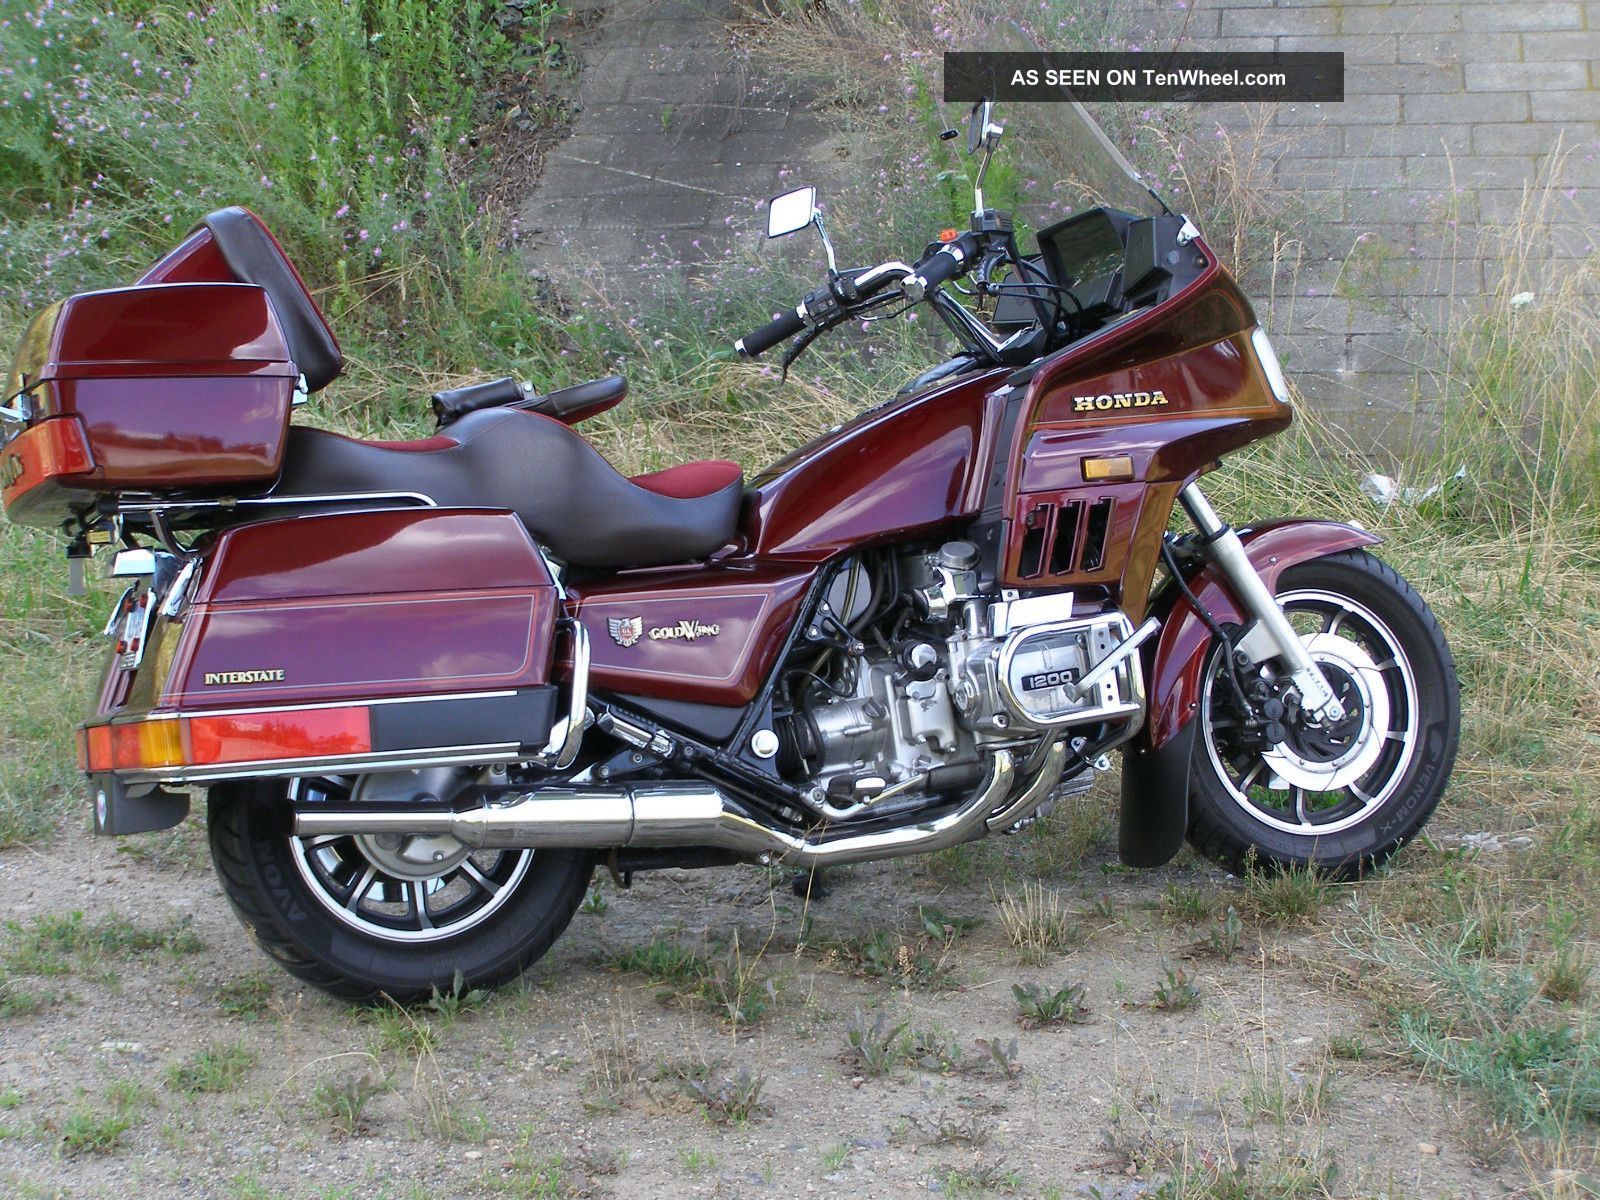 1984 Honda Goldwing Custom | 1984 Honda Gold Wing 1200 ...